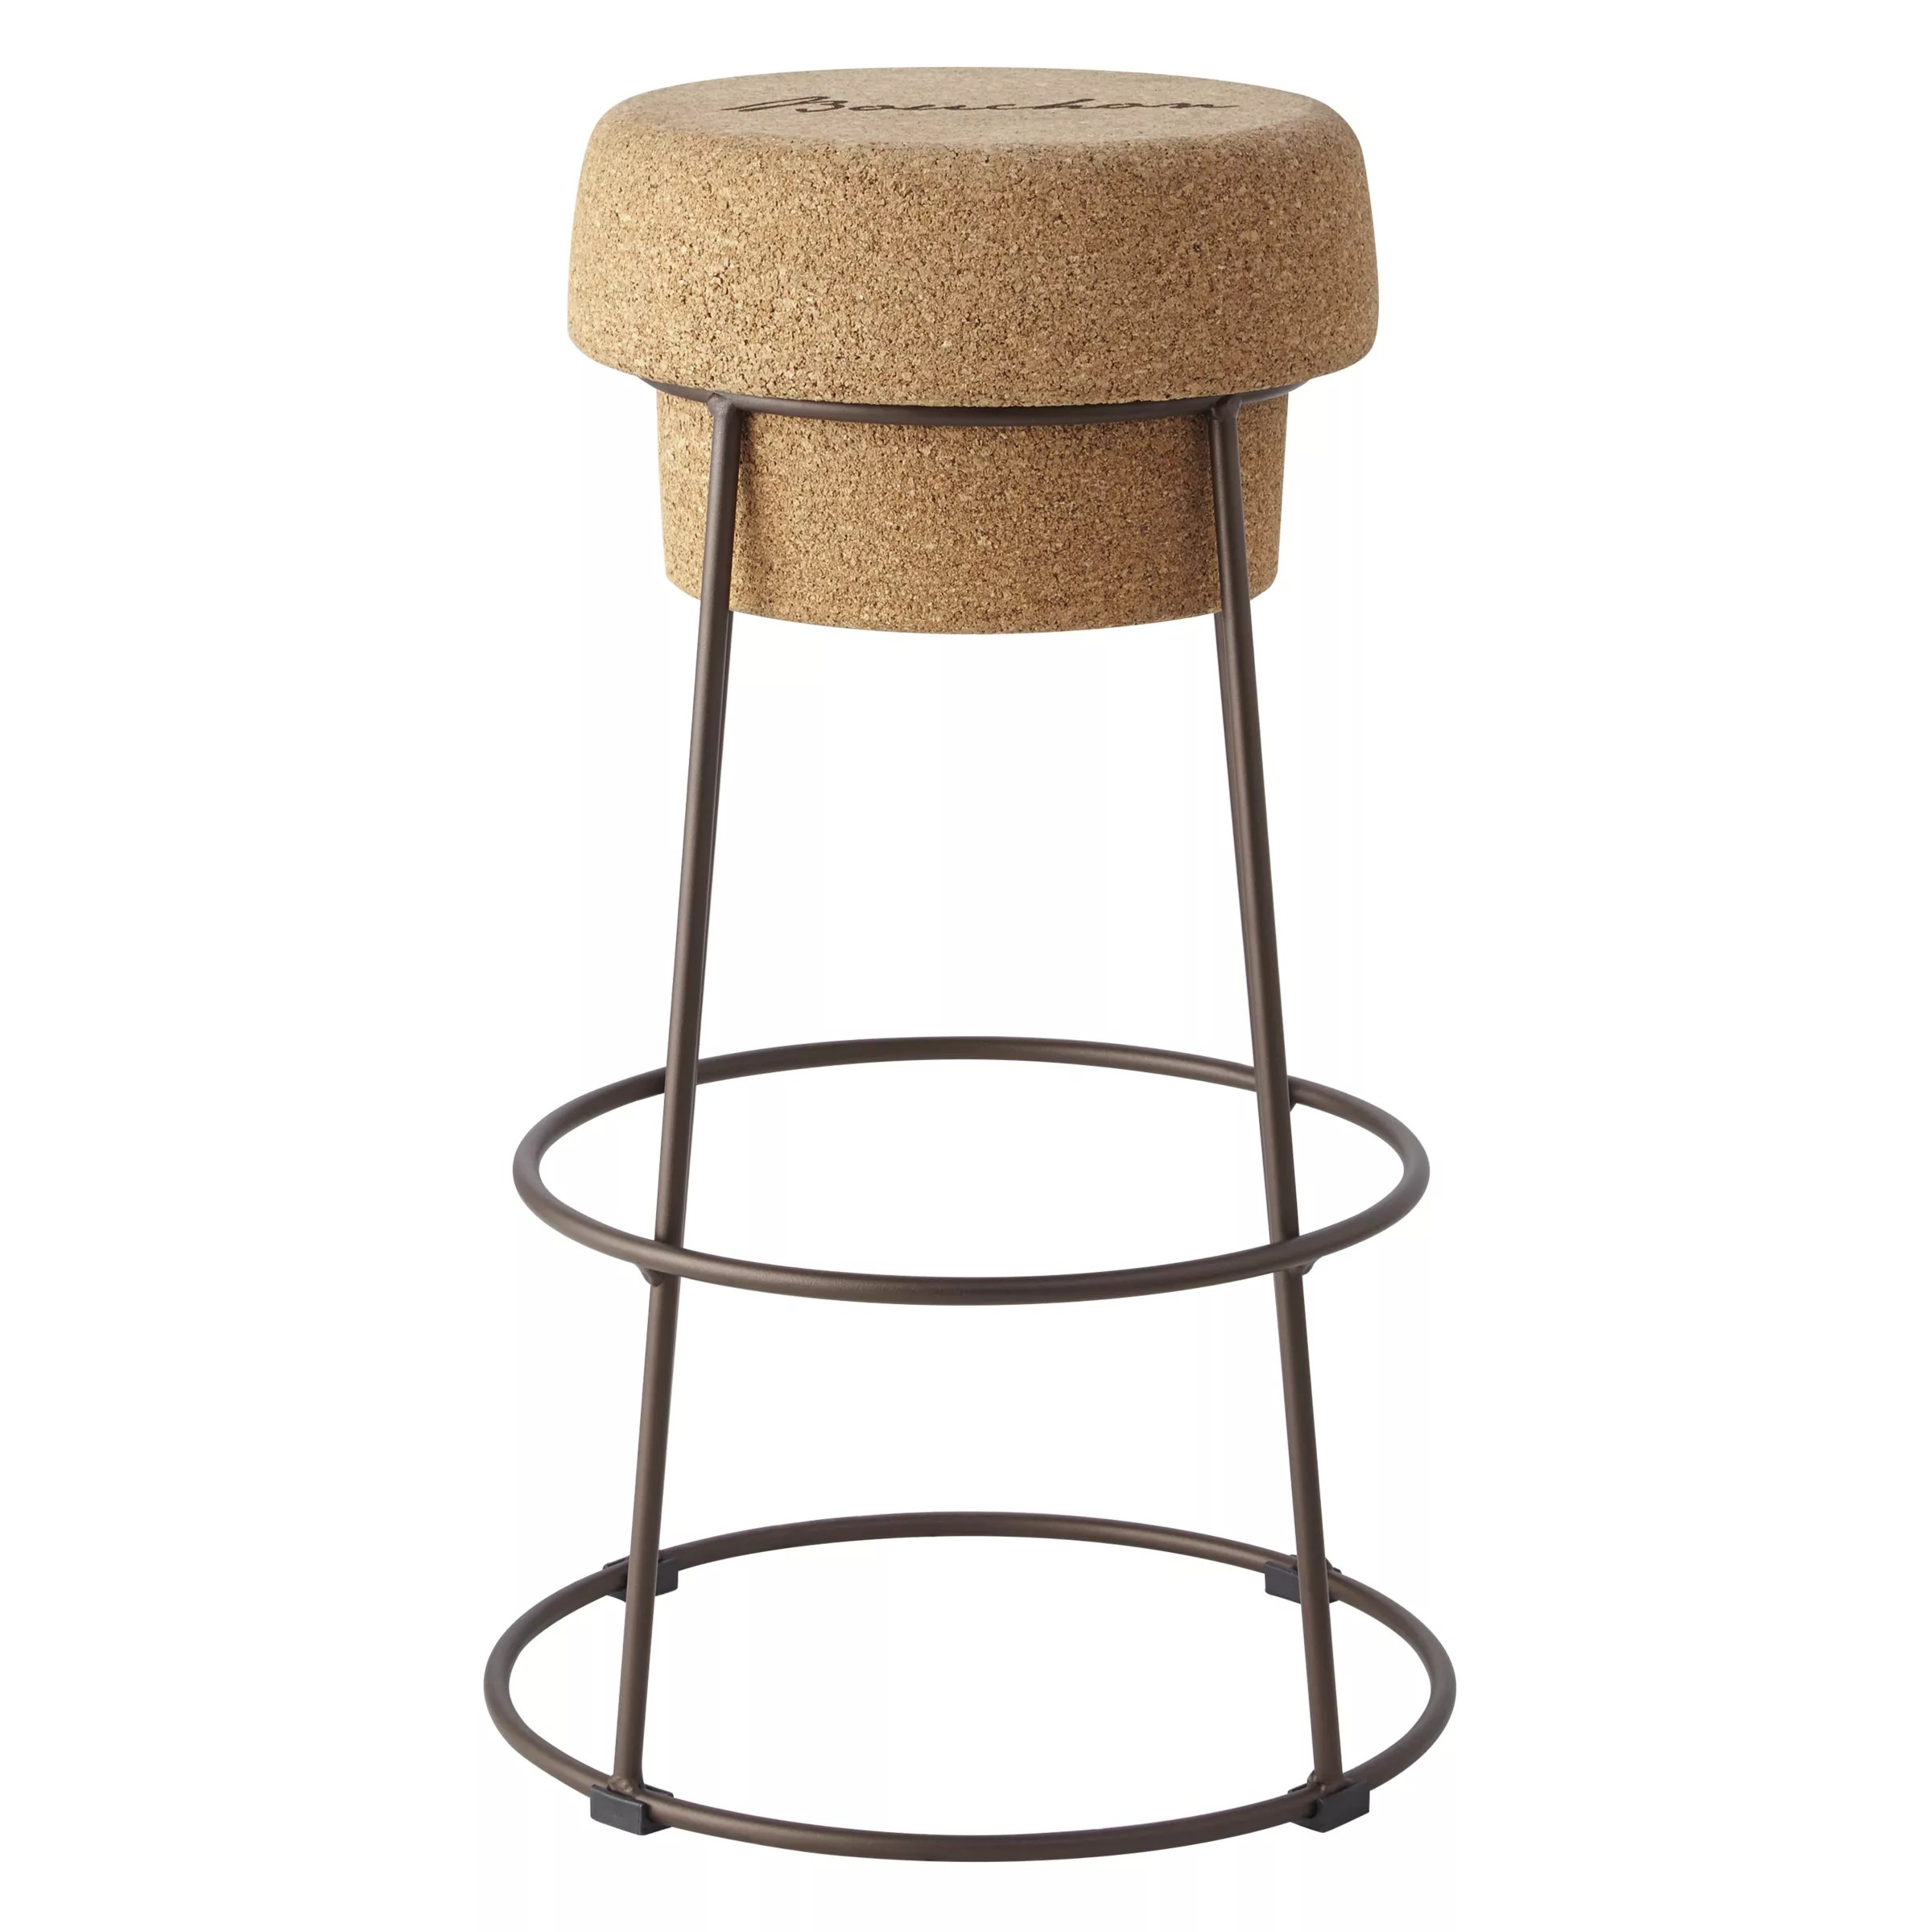 Bouchon Counter Stool John Lewis Bouchon Bar Stool Cork At John Lewis And Partners